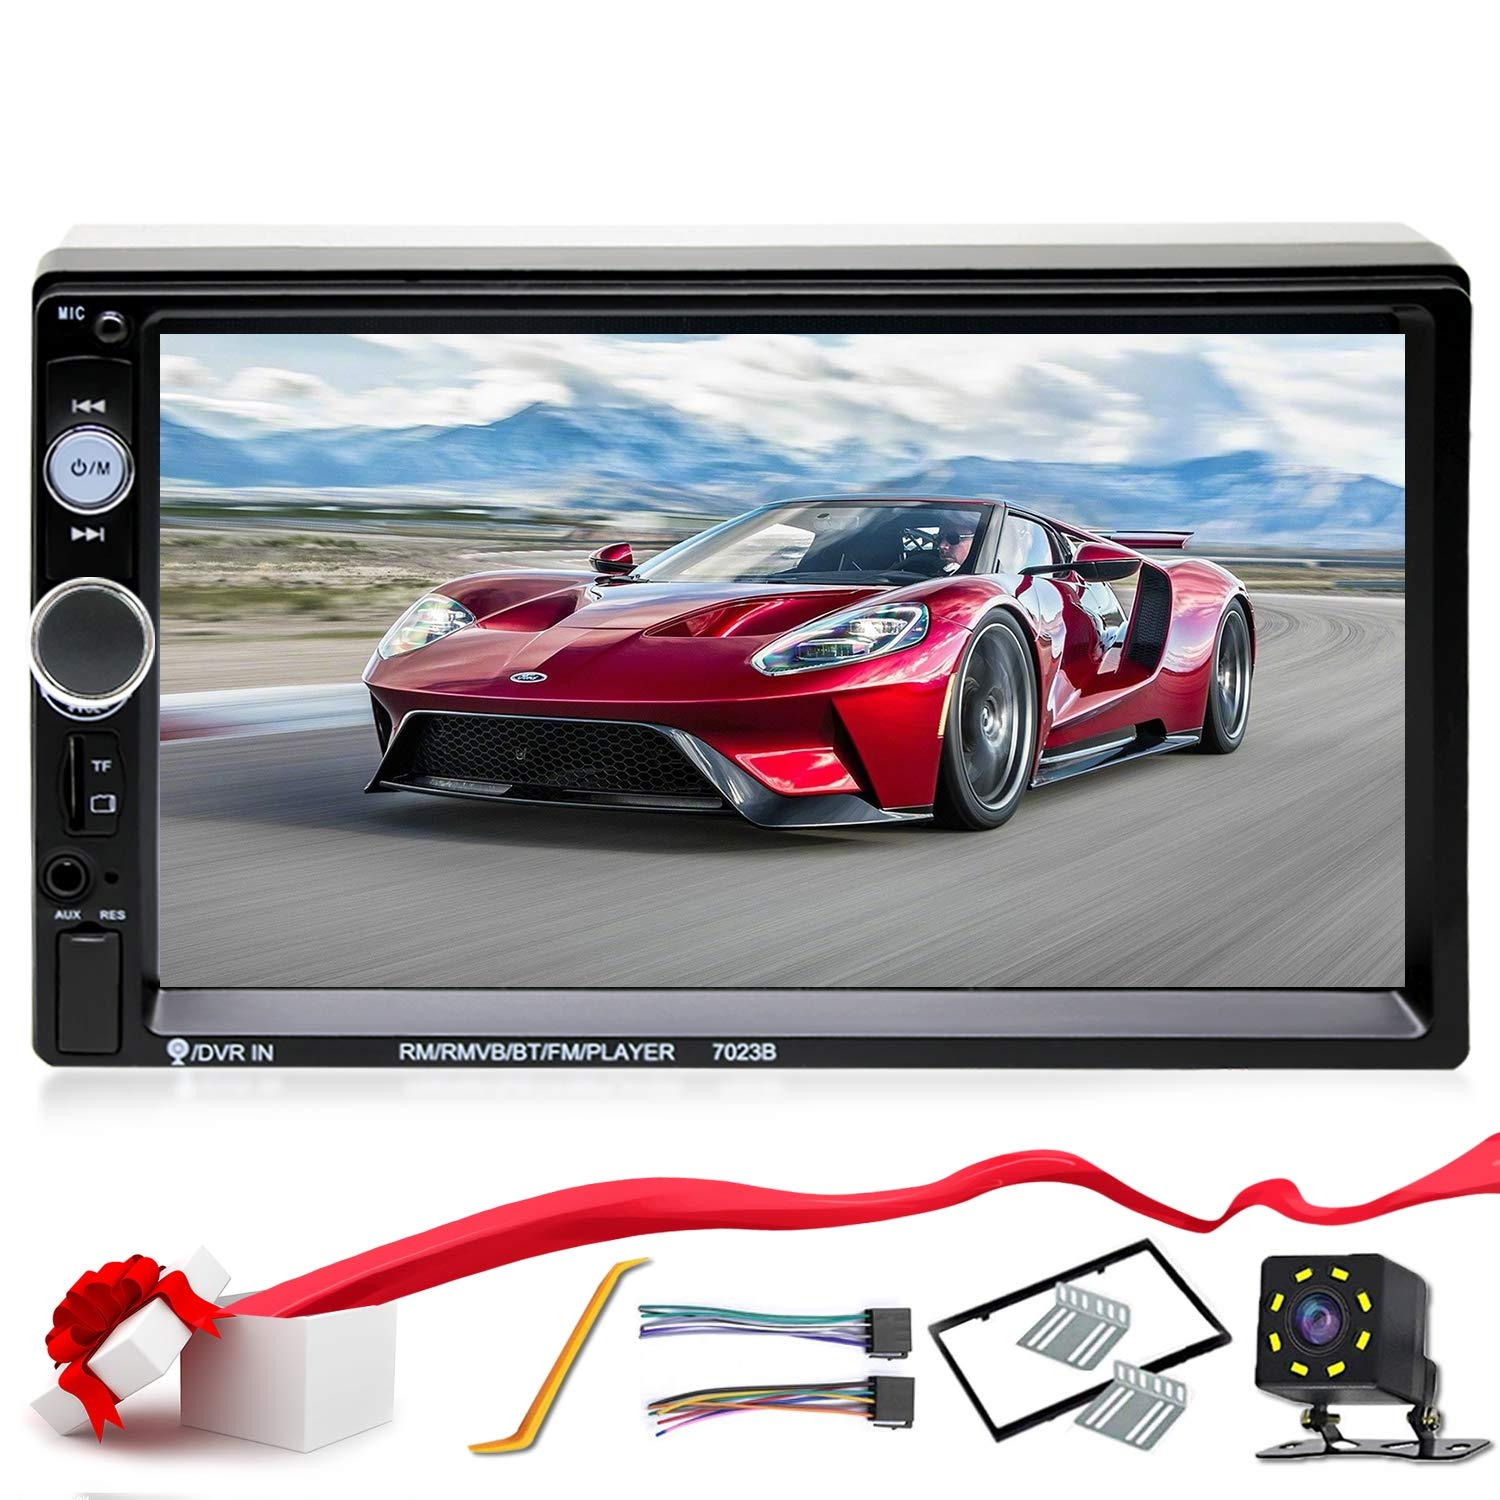 Double Din Car Stereo In-Dash